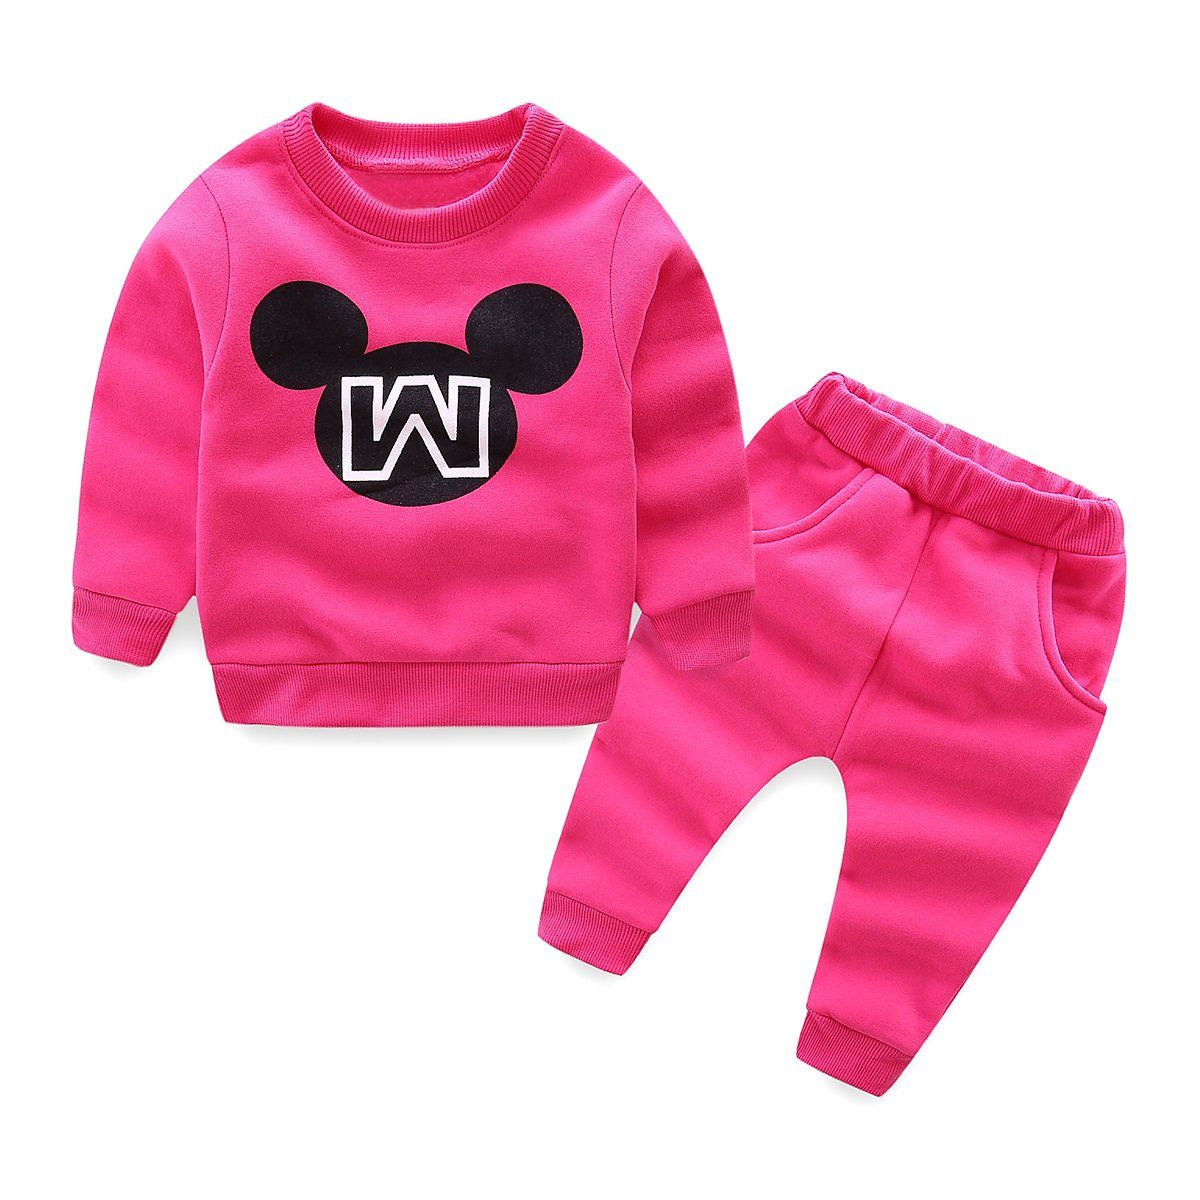 Mud kingdom little girls letters fleece sweater and pants outfits t